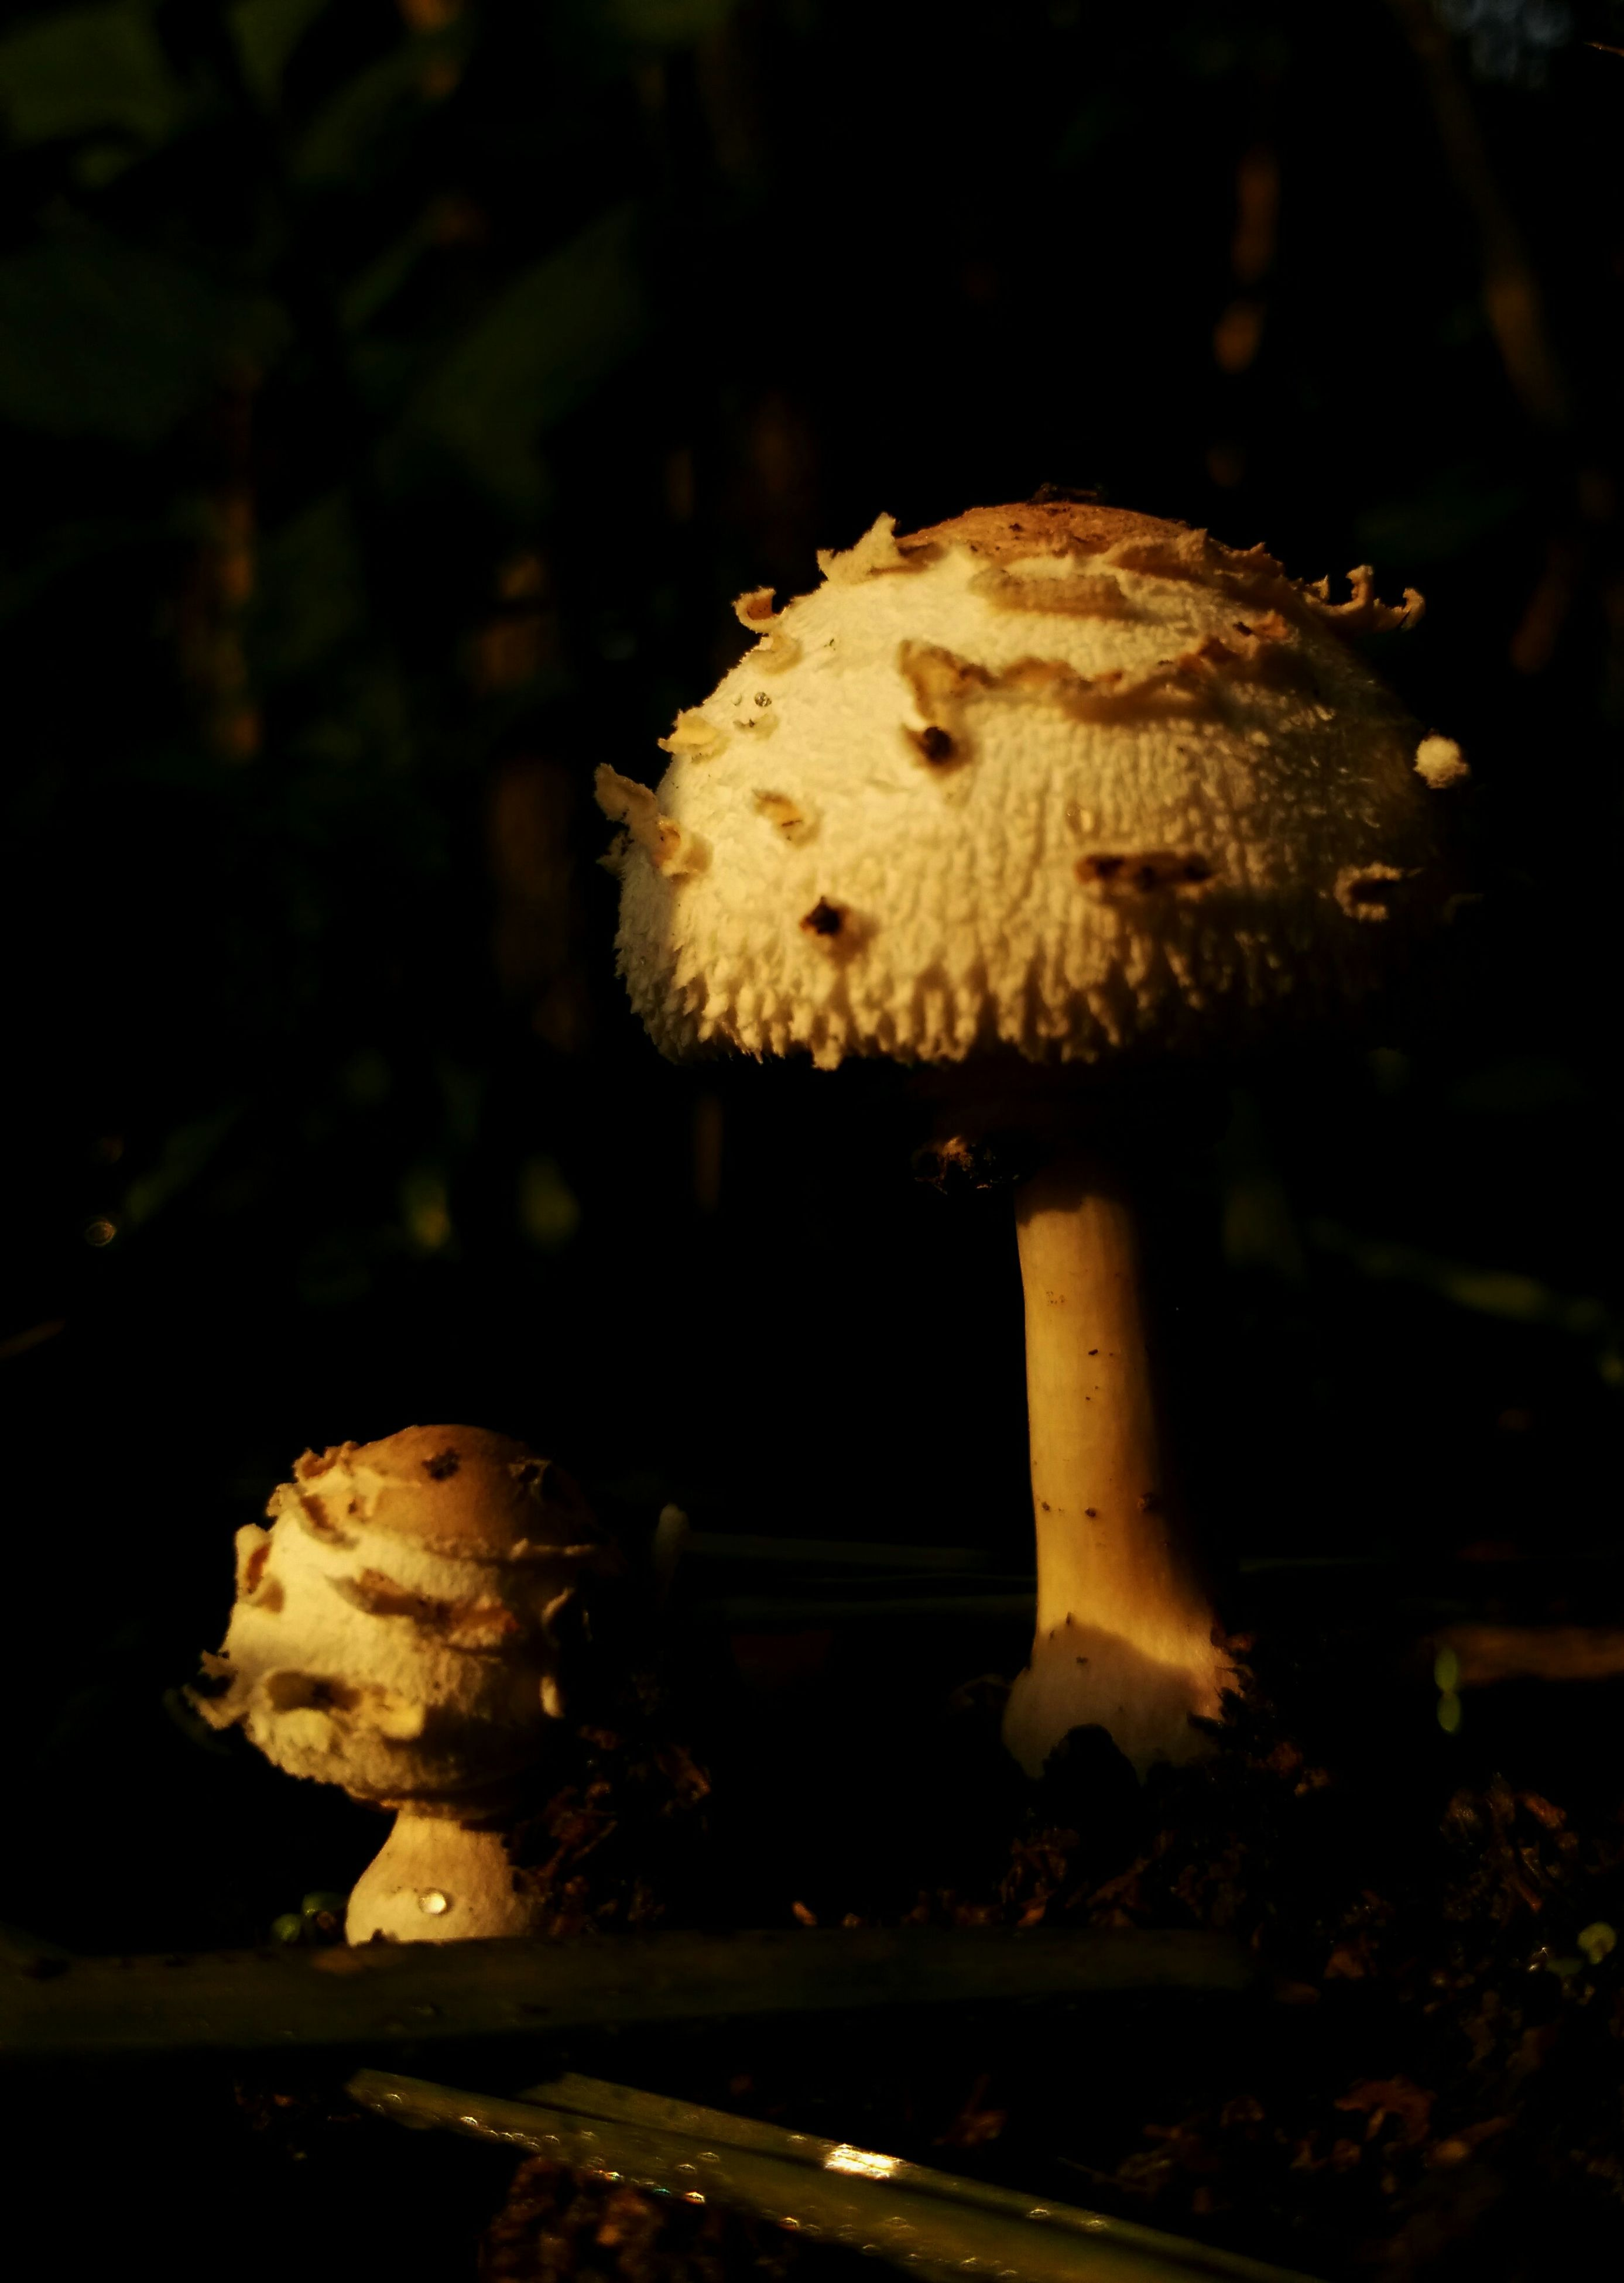 night, close-up, focus on foreground, forest, outdoors, nature, no people, wood - material, mushroom, selective focus, dark, fungus, one animal, high angle view, leaf, rock - object, wildlife, tree stump, damaged